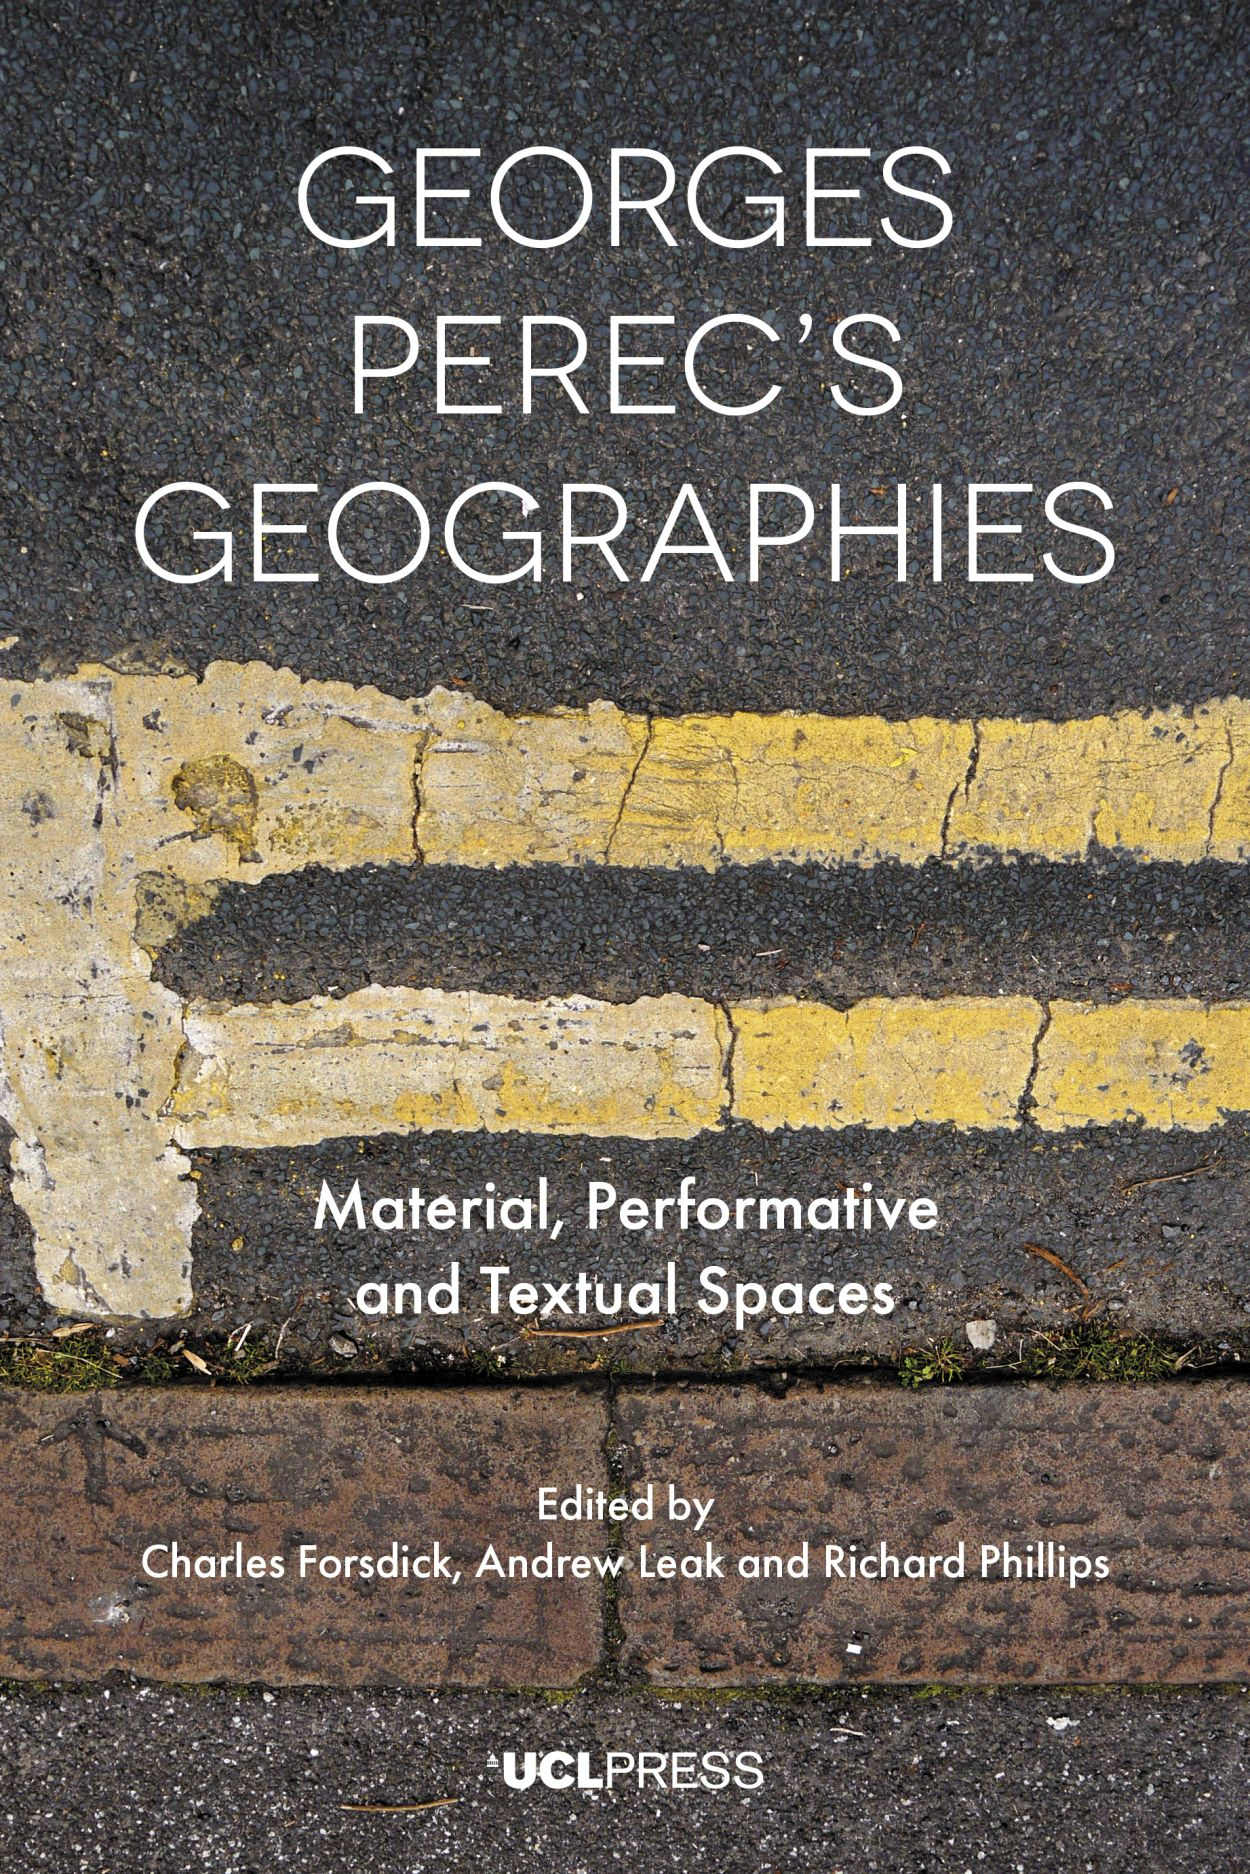 Georges Perec's Geographies